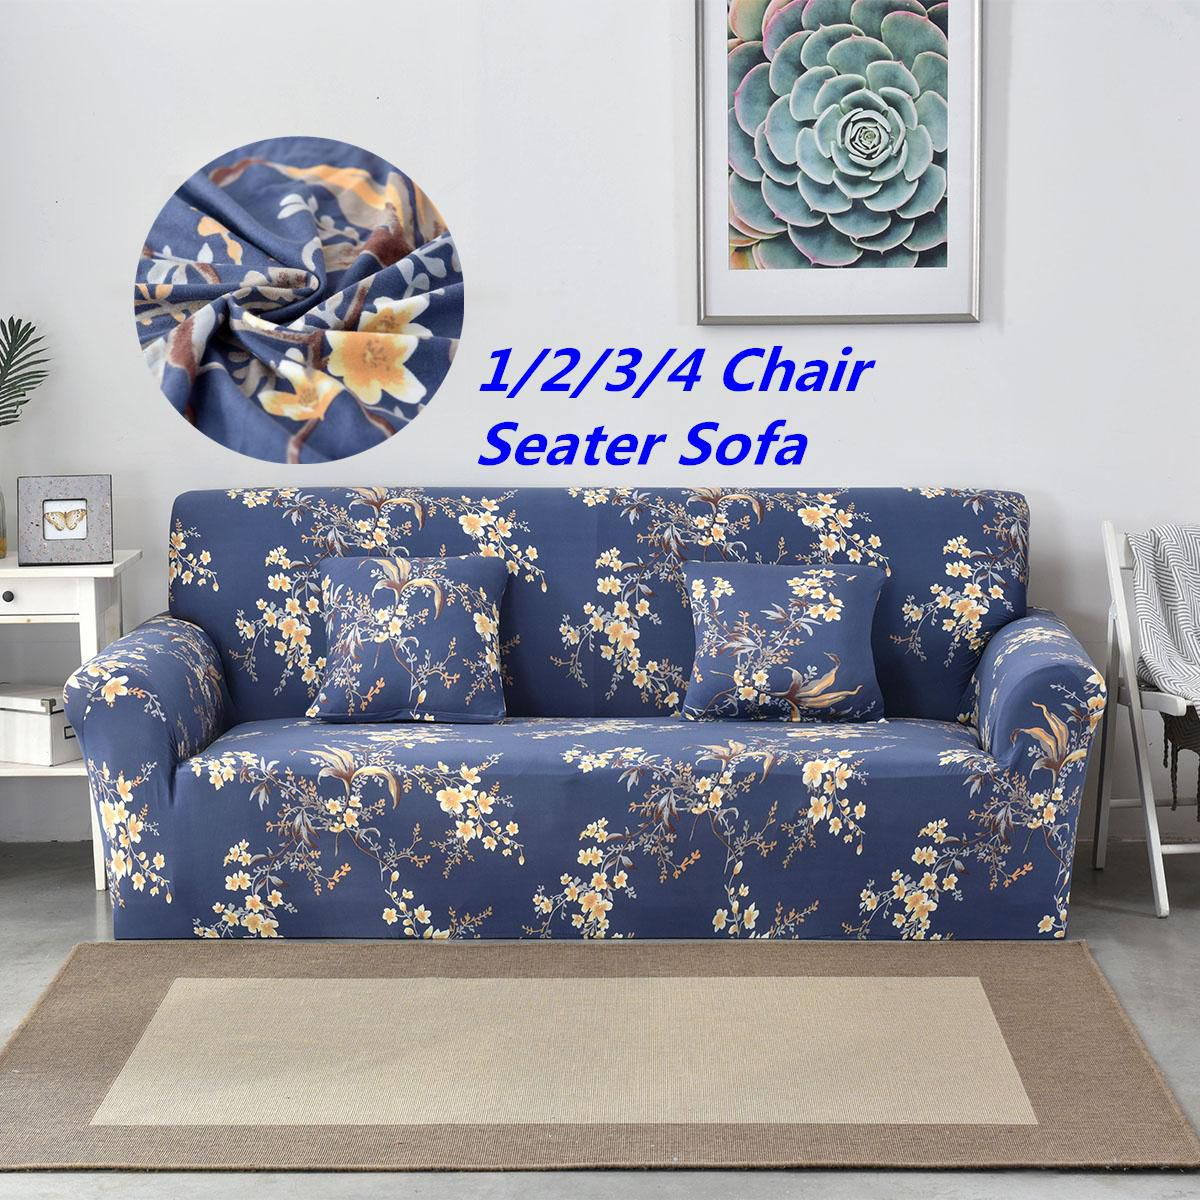 Cool 1 2 3 4 Seater Sofa Cover Chair Couch Stretch Elastic Andrewgaddart Wooden Chair Designs For Living Room Andrewgaddartcom